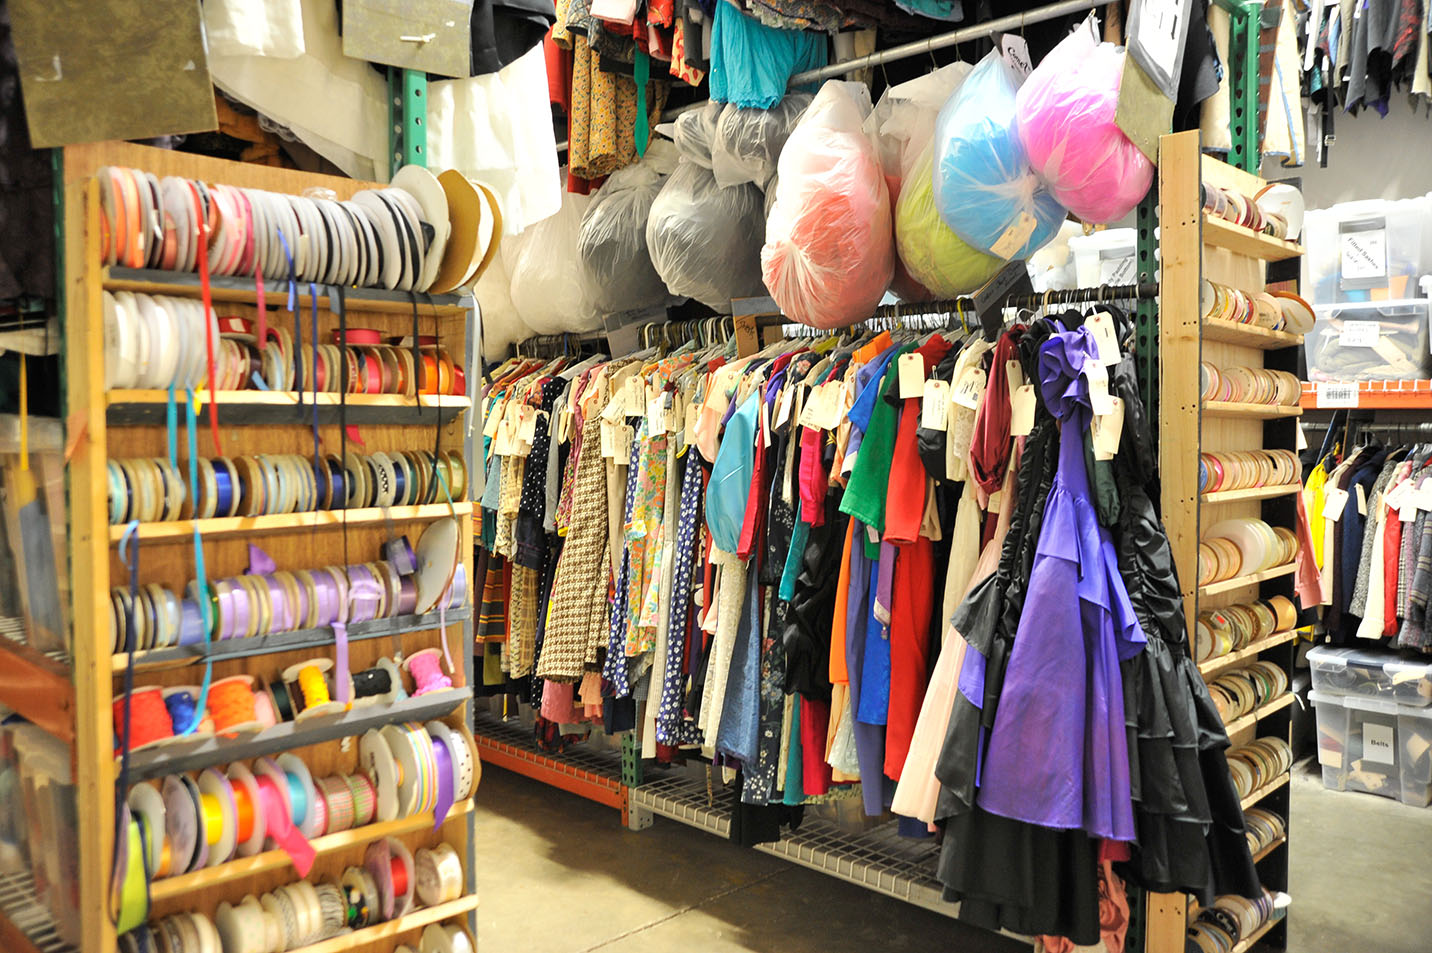 This is a photo of costumes and fabric in the Ulrey Performing Arts Center.